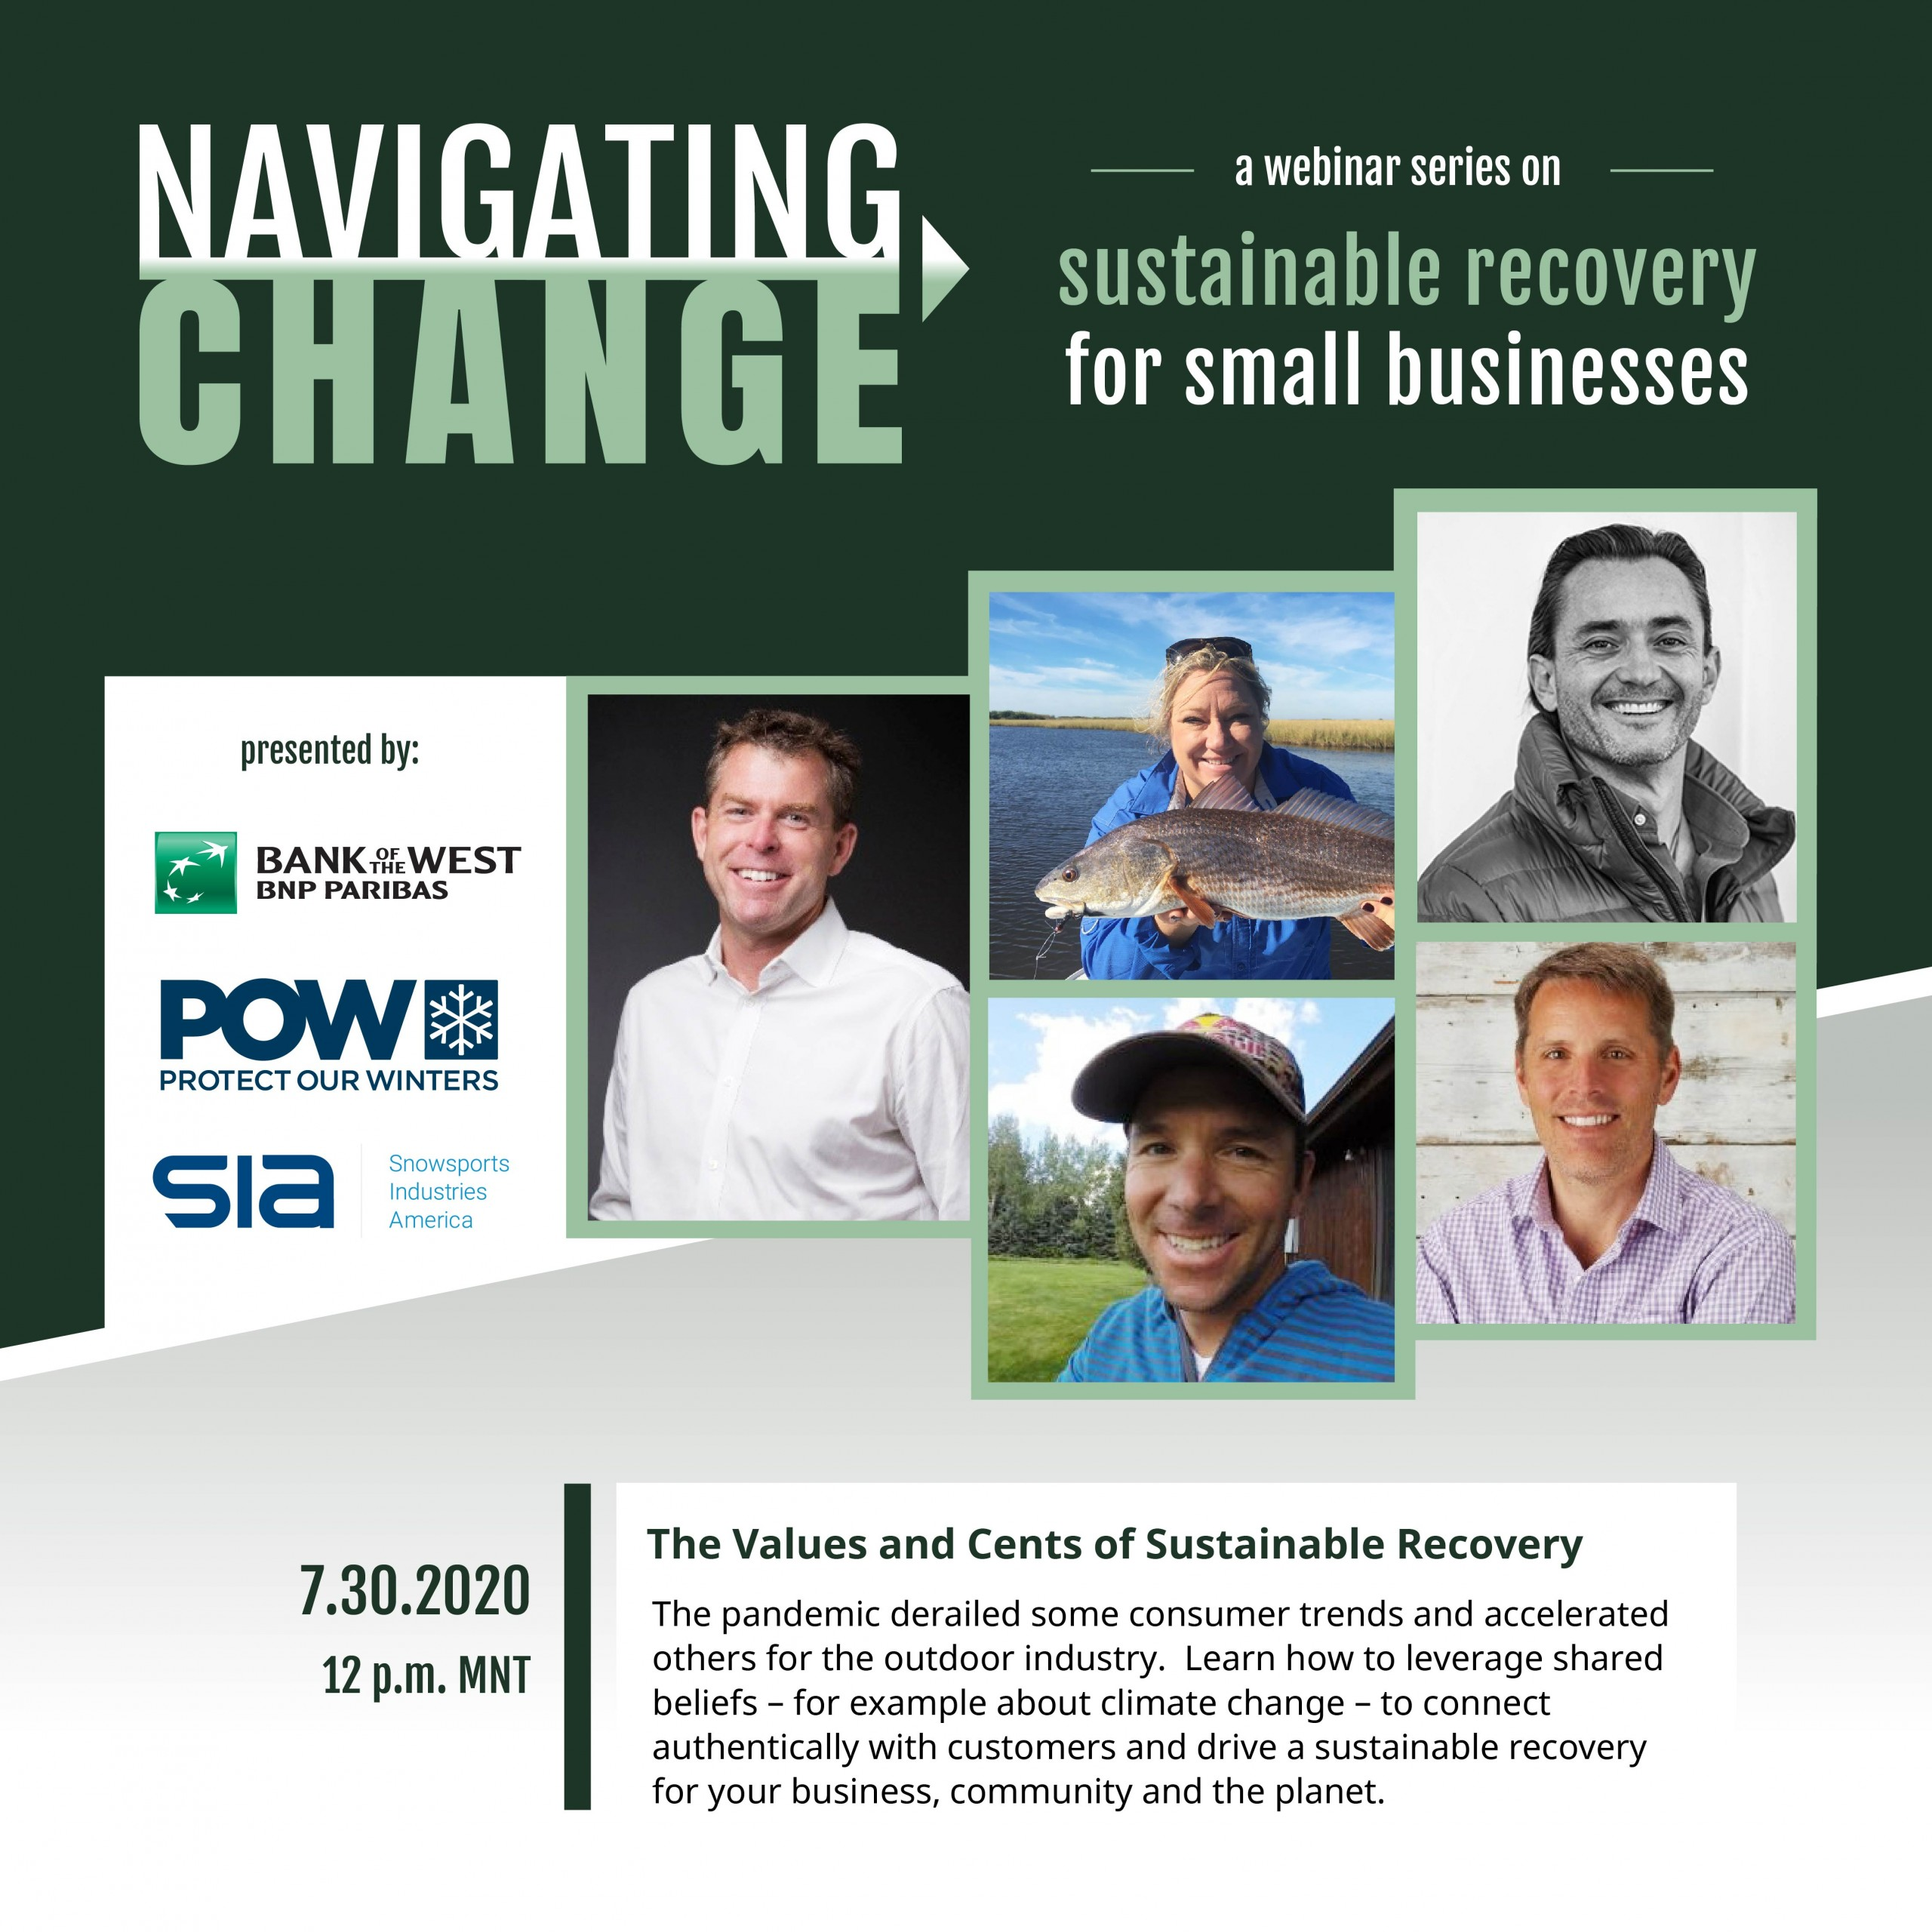 Navigating Change Series #2: The Values and Cents of Sustainable Recovery